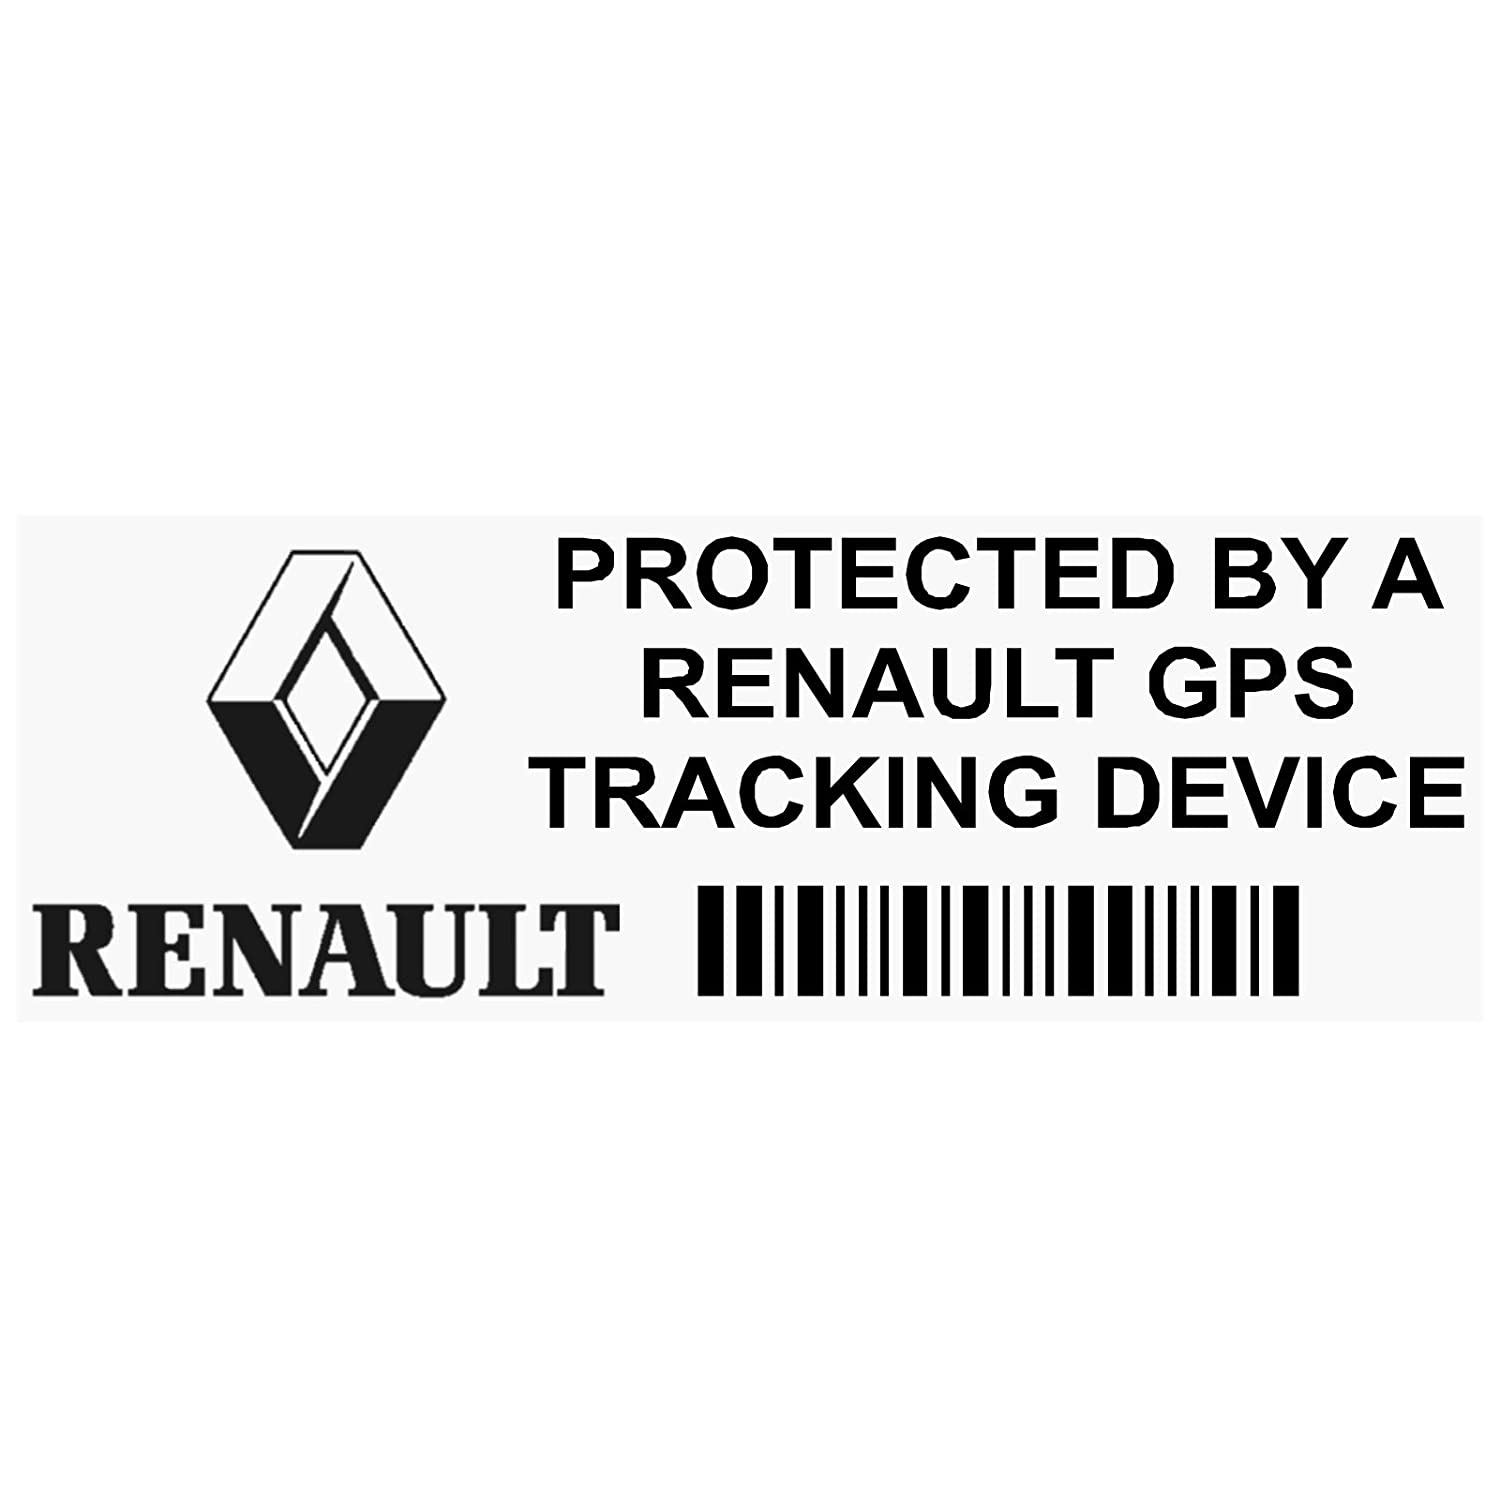 Platinum Place - Lot de 5 autocollants antivol en anglais PPRENAULTGPSBLK indiquant la protection du véhicule par un dispositif de repérage par GPS - 87 x 30 mm